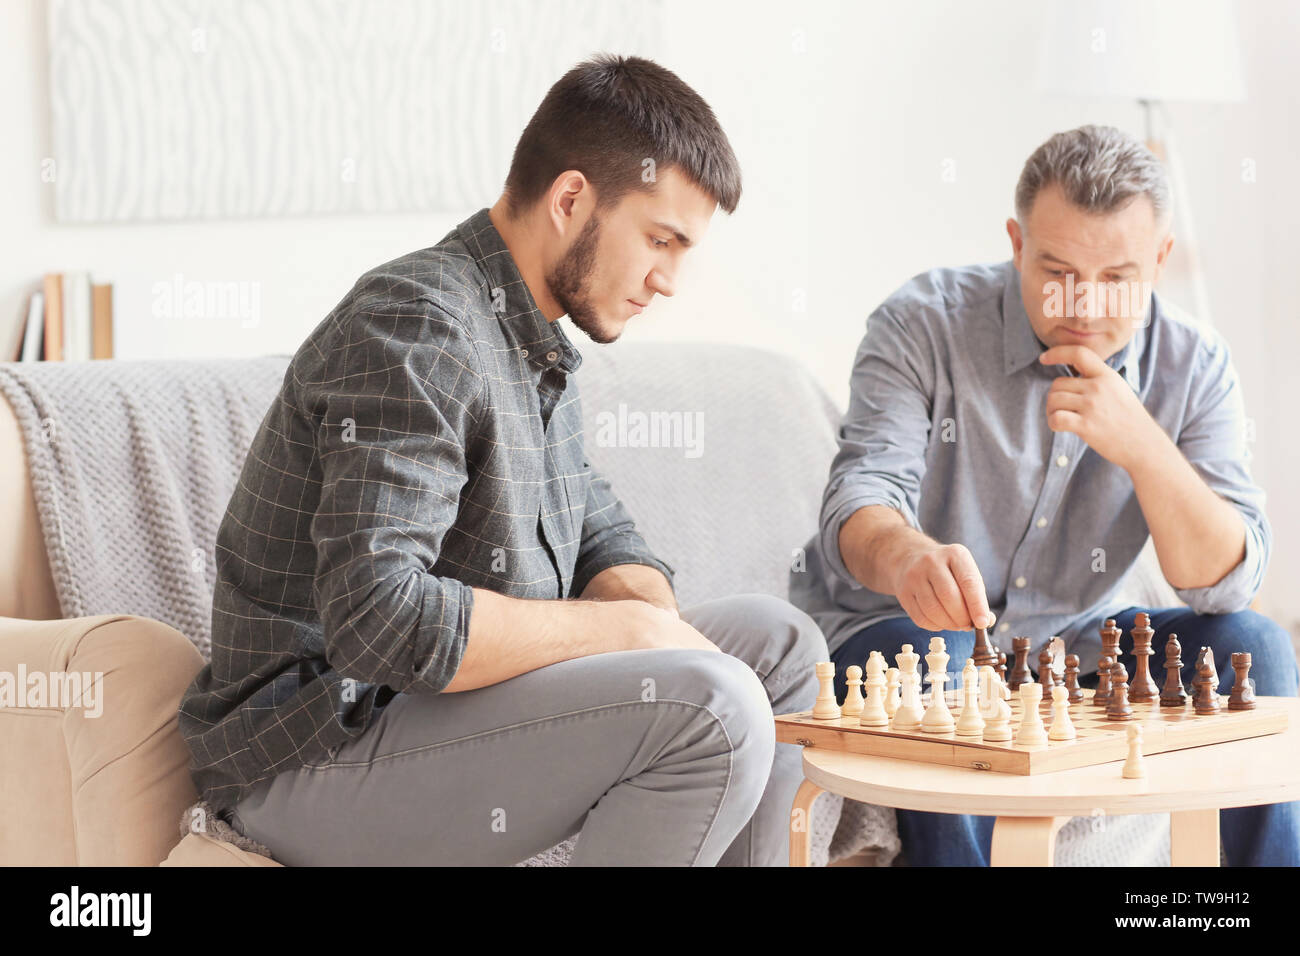 Mature man playing chess with his son at home - Stock Image